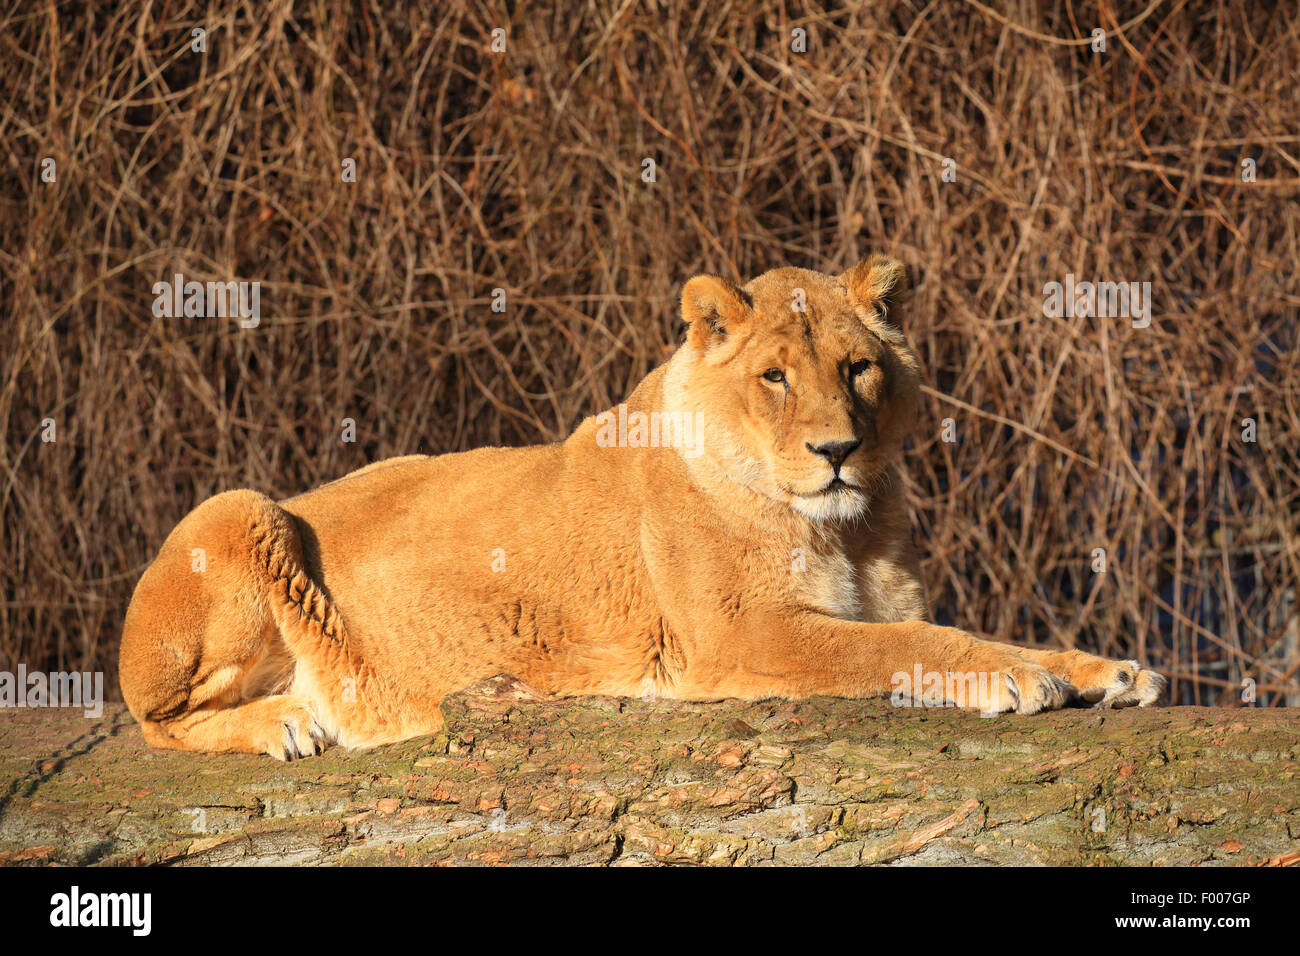 Asiatic lion (Panthera leo persica goojratensis), resting lioness - Stock Image